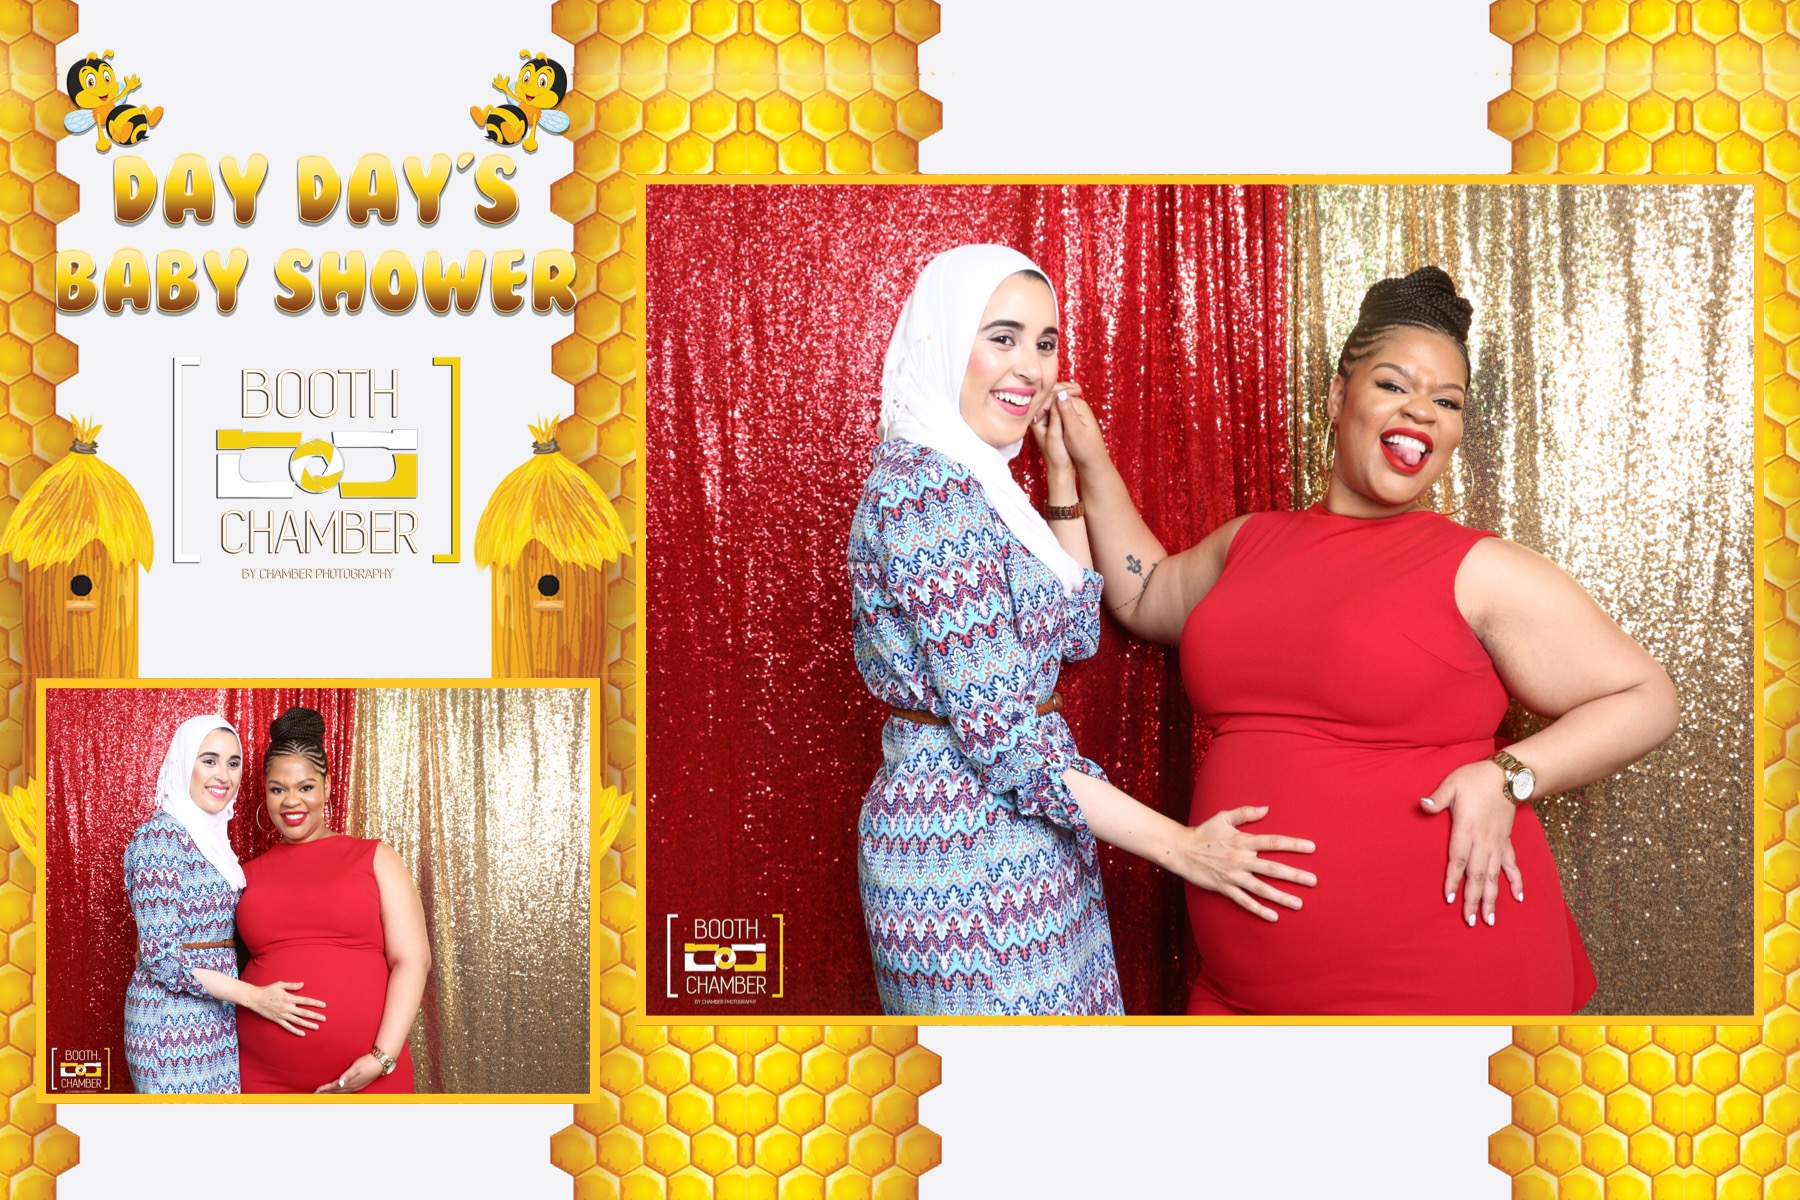 Booth Chamber Photo Booth Baby Shower Chamber Hart Photography_32.jpeg